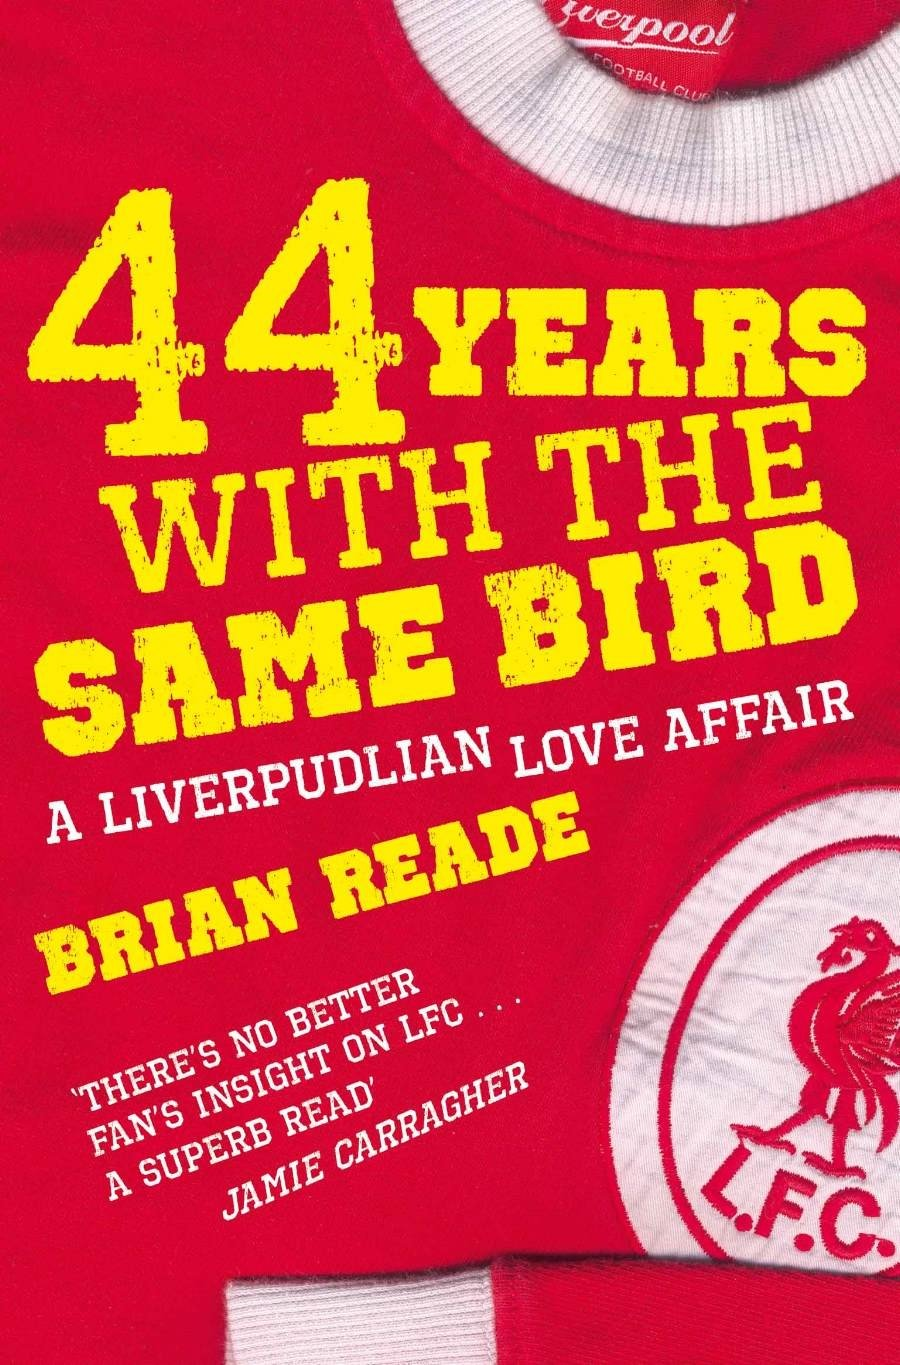 44 Years With The Same Bird: A Liverpudlian Love Affair